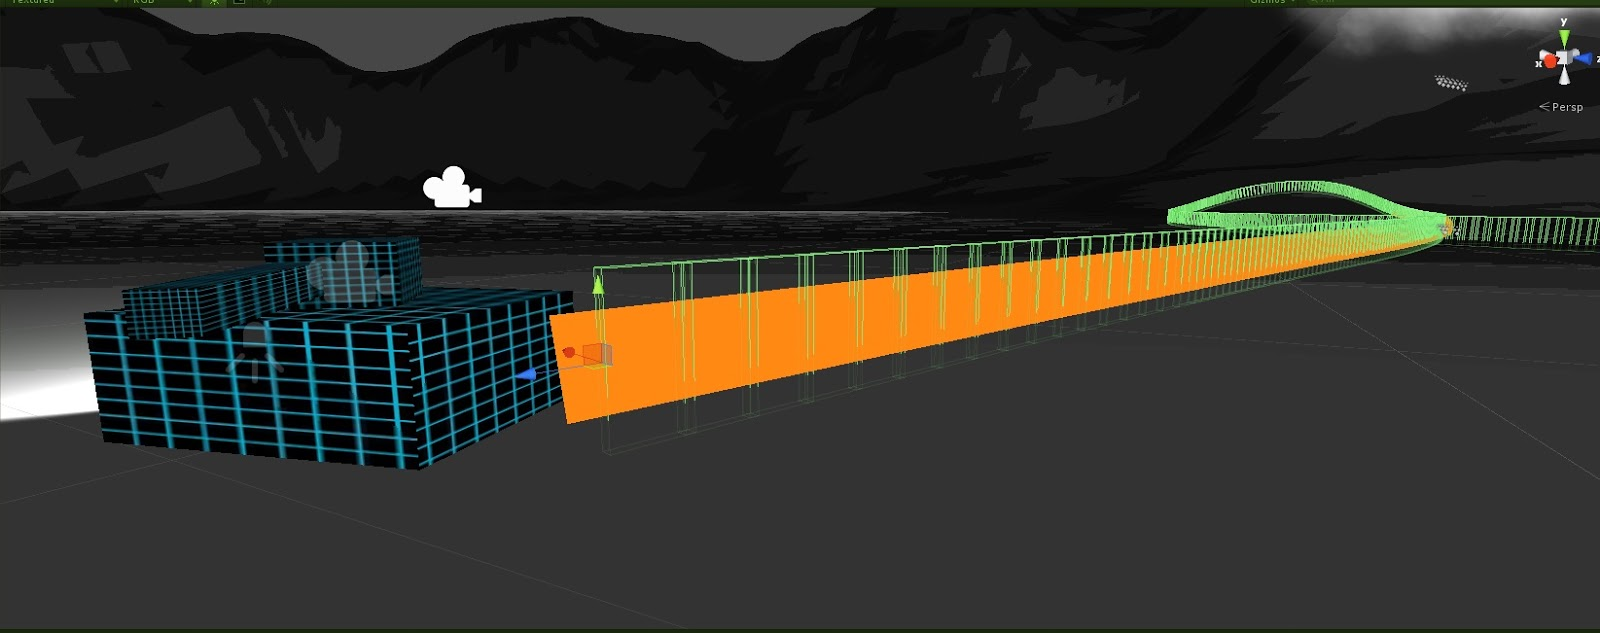 Mark's Game Development Blog: Unity - Trail Renderer (with colliders)